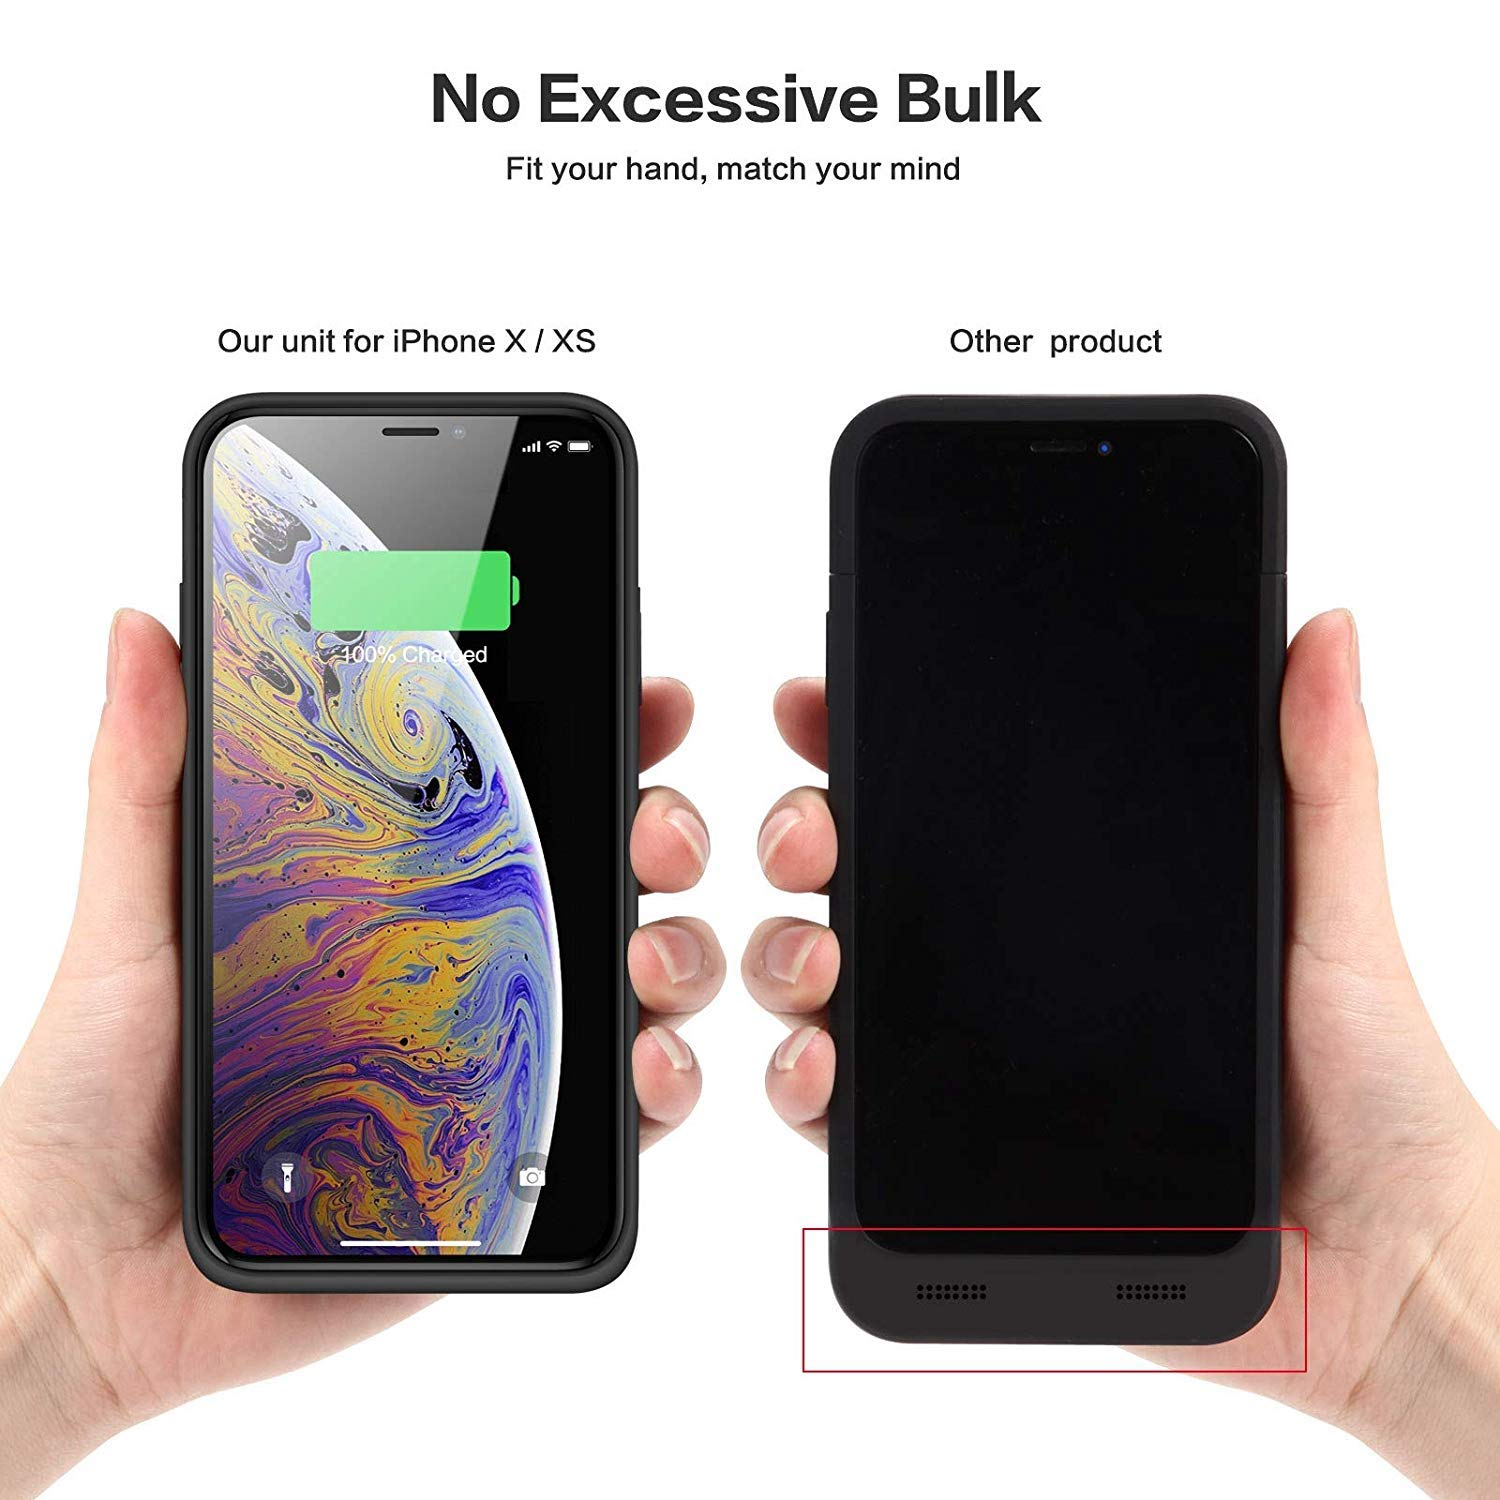 Blue iPhone 11 Pro Max Battery Case 6500mAh Portable Charger Rechargeable Slim Fit with Kickstand for iPhone 11 Pro Max 6.5 inch